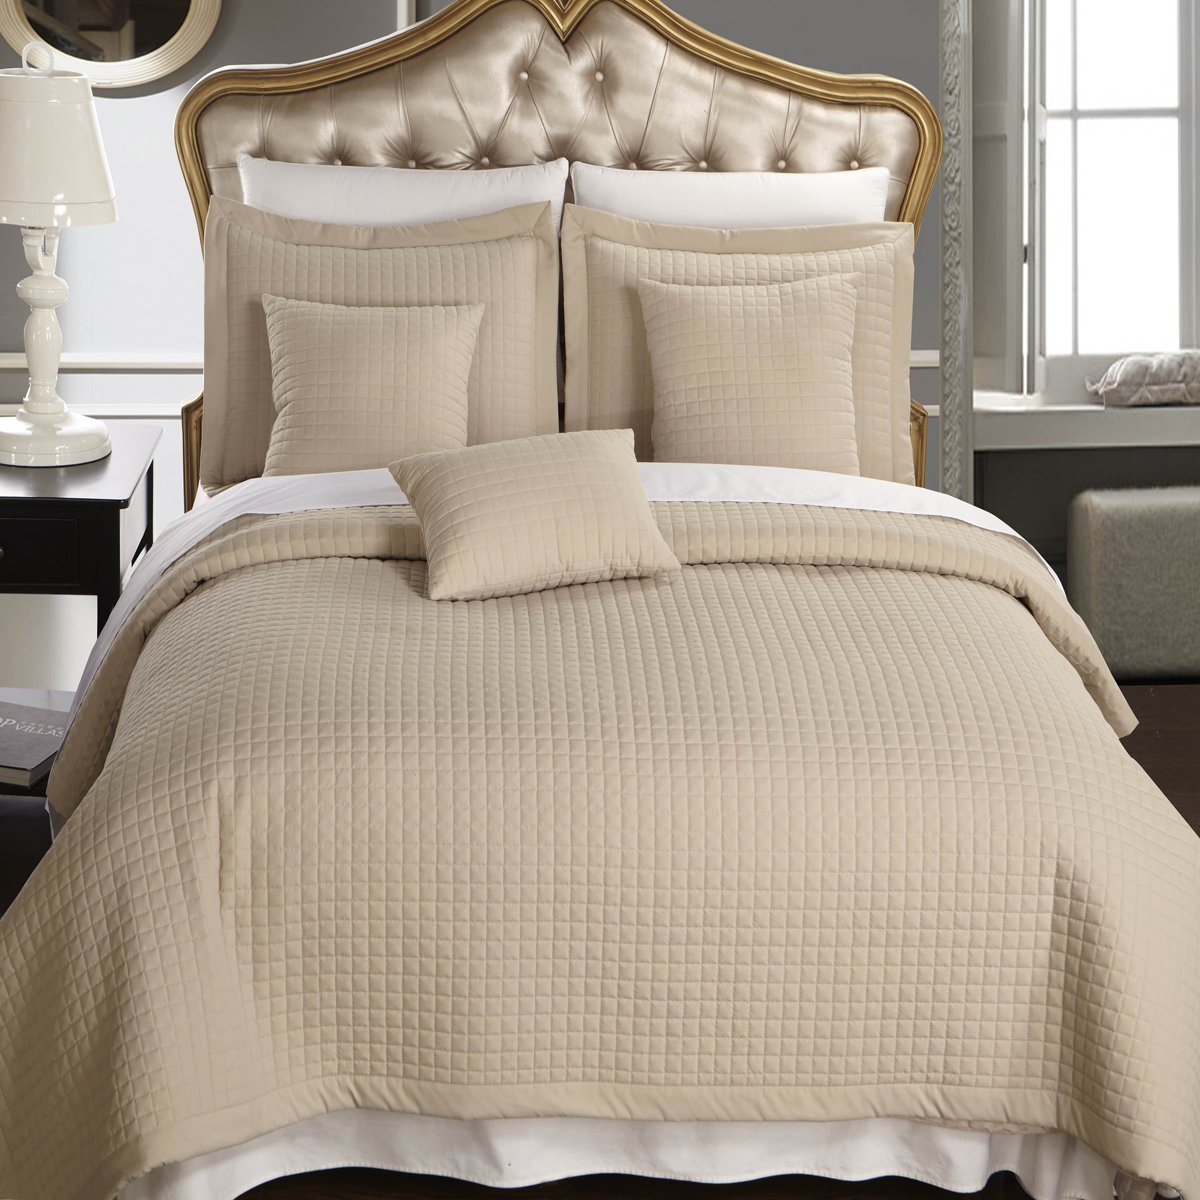 California King size Linen / Beige Coverlet 3pc set, Luxury Microfiber Checkered Quilted by Royal Hotel